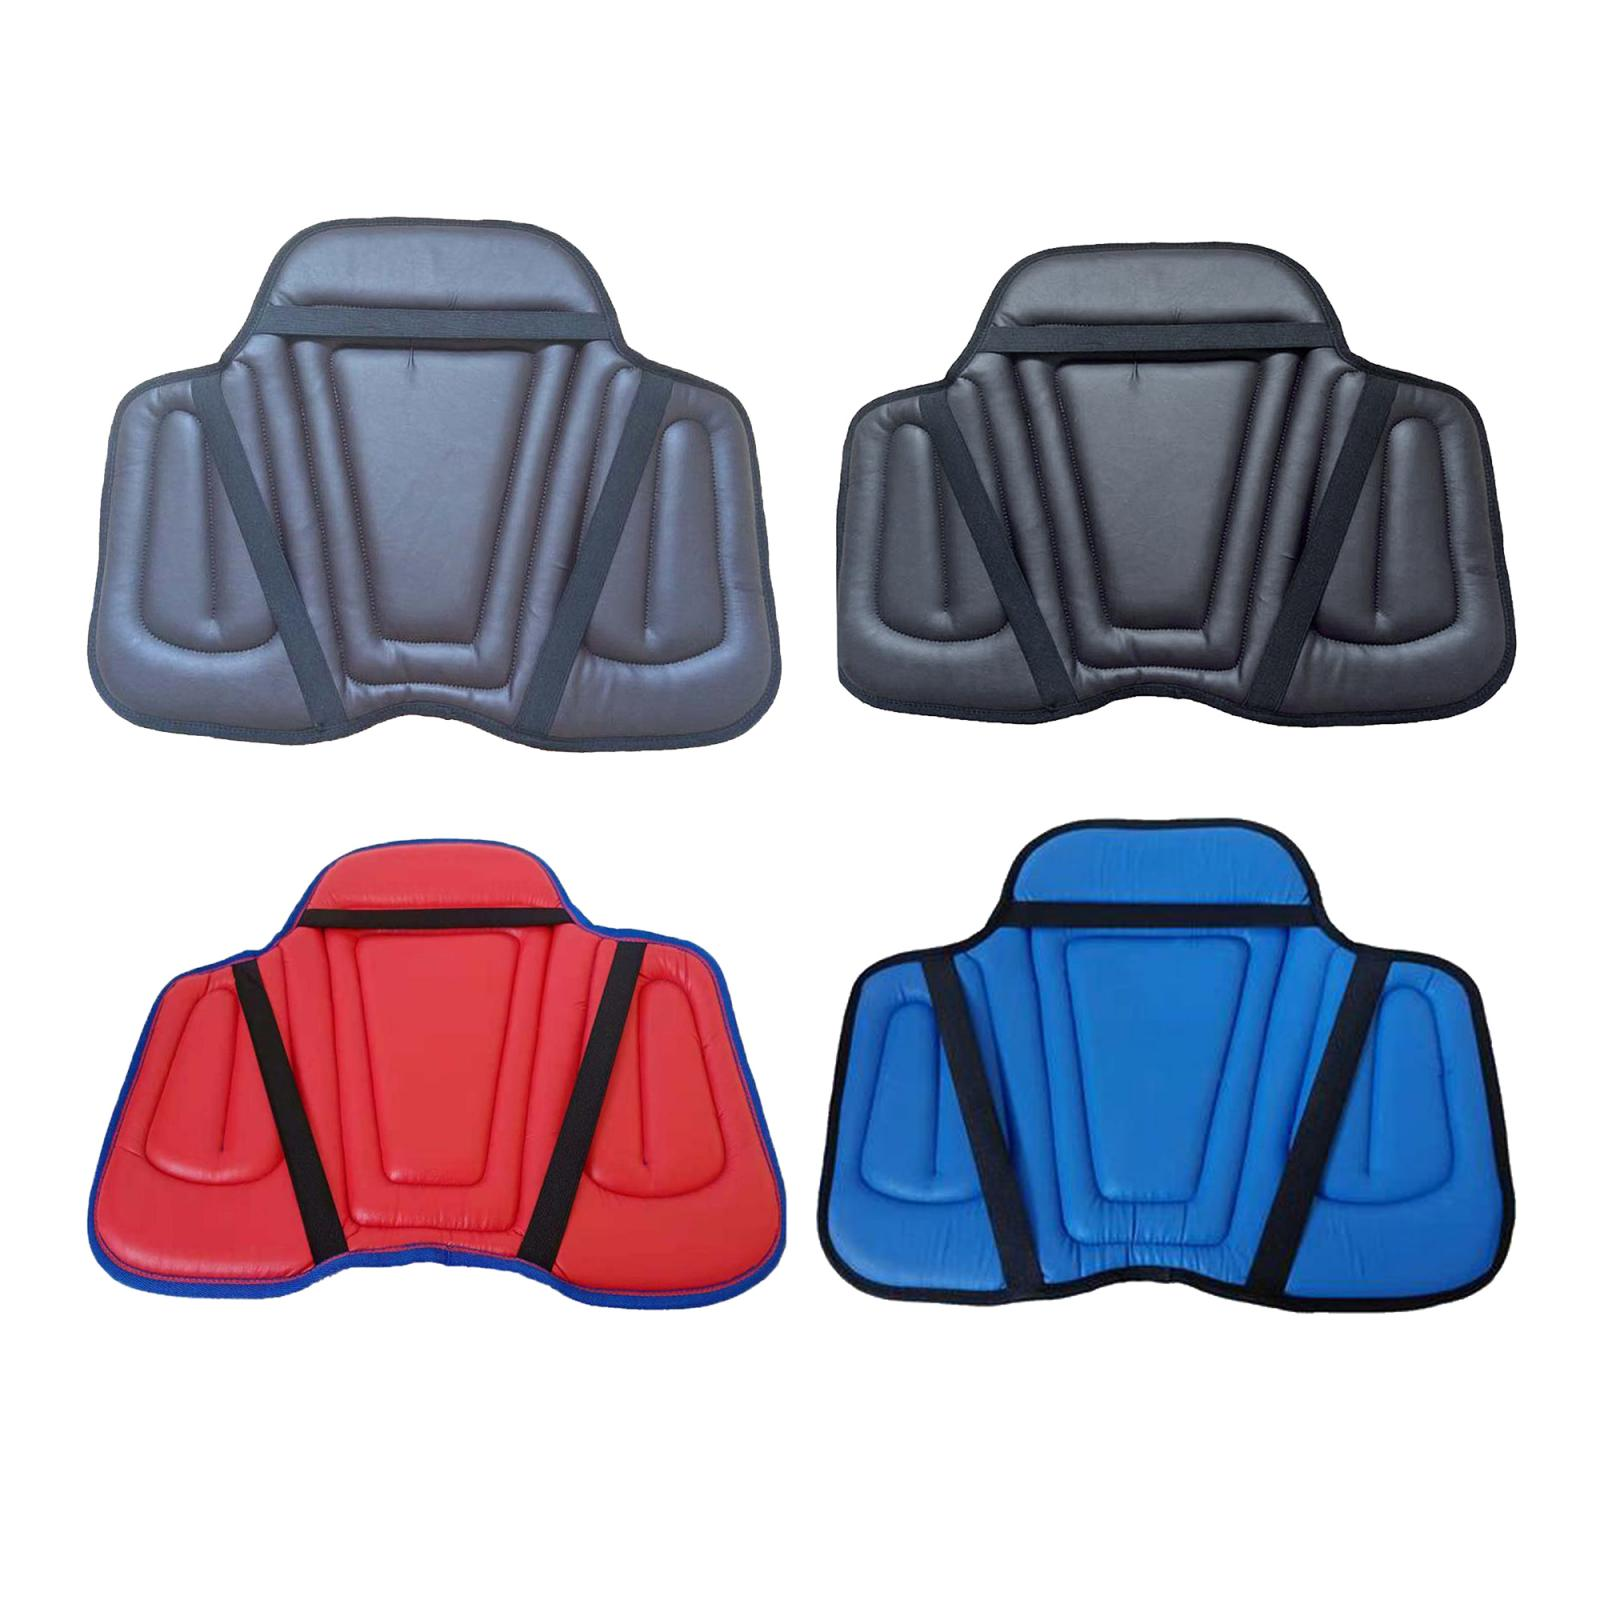 Leather Horse Riding Seat Shock Absorbing Memory Foam Saddle Cushion for Outdoor Equestrian Riding Horse Equipment Accessories